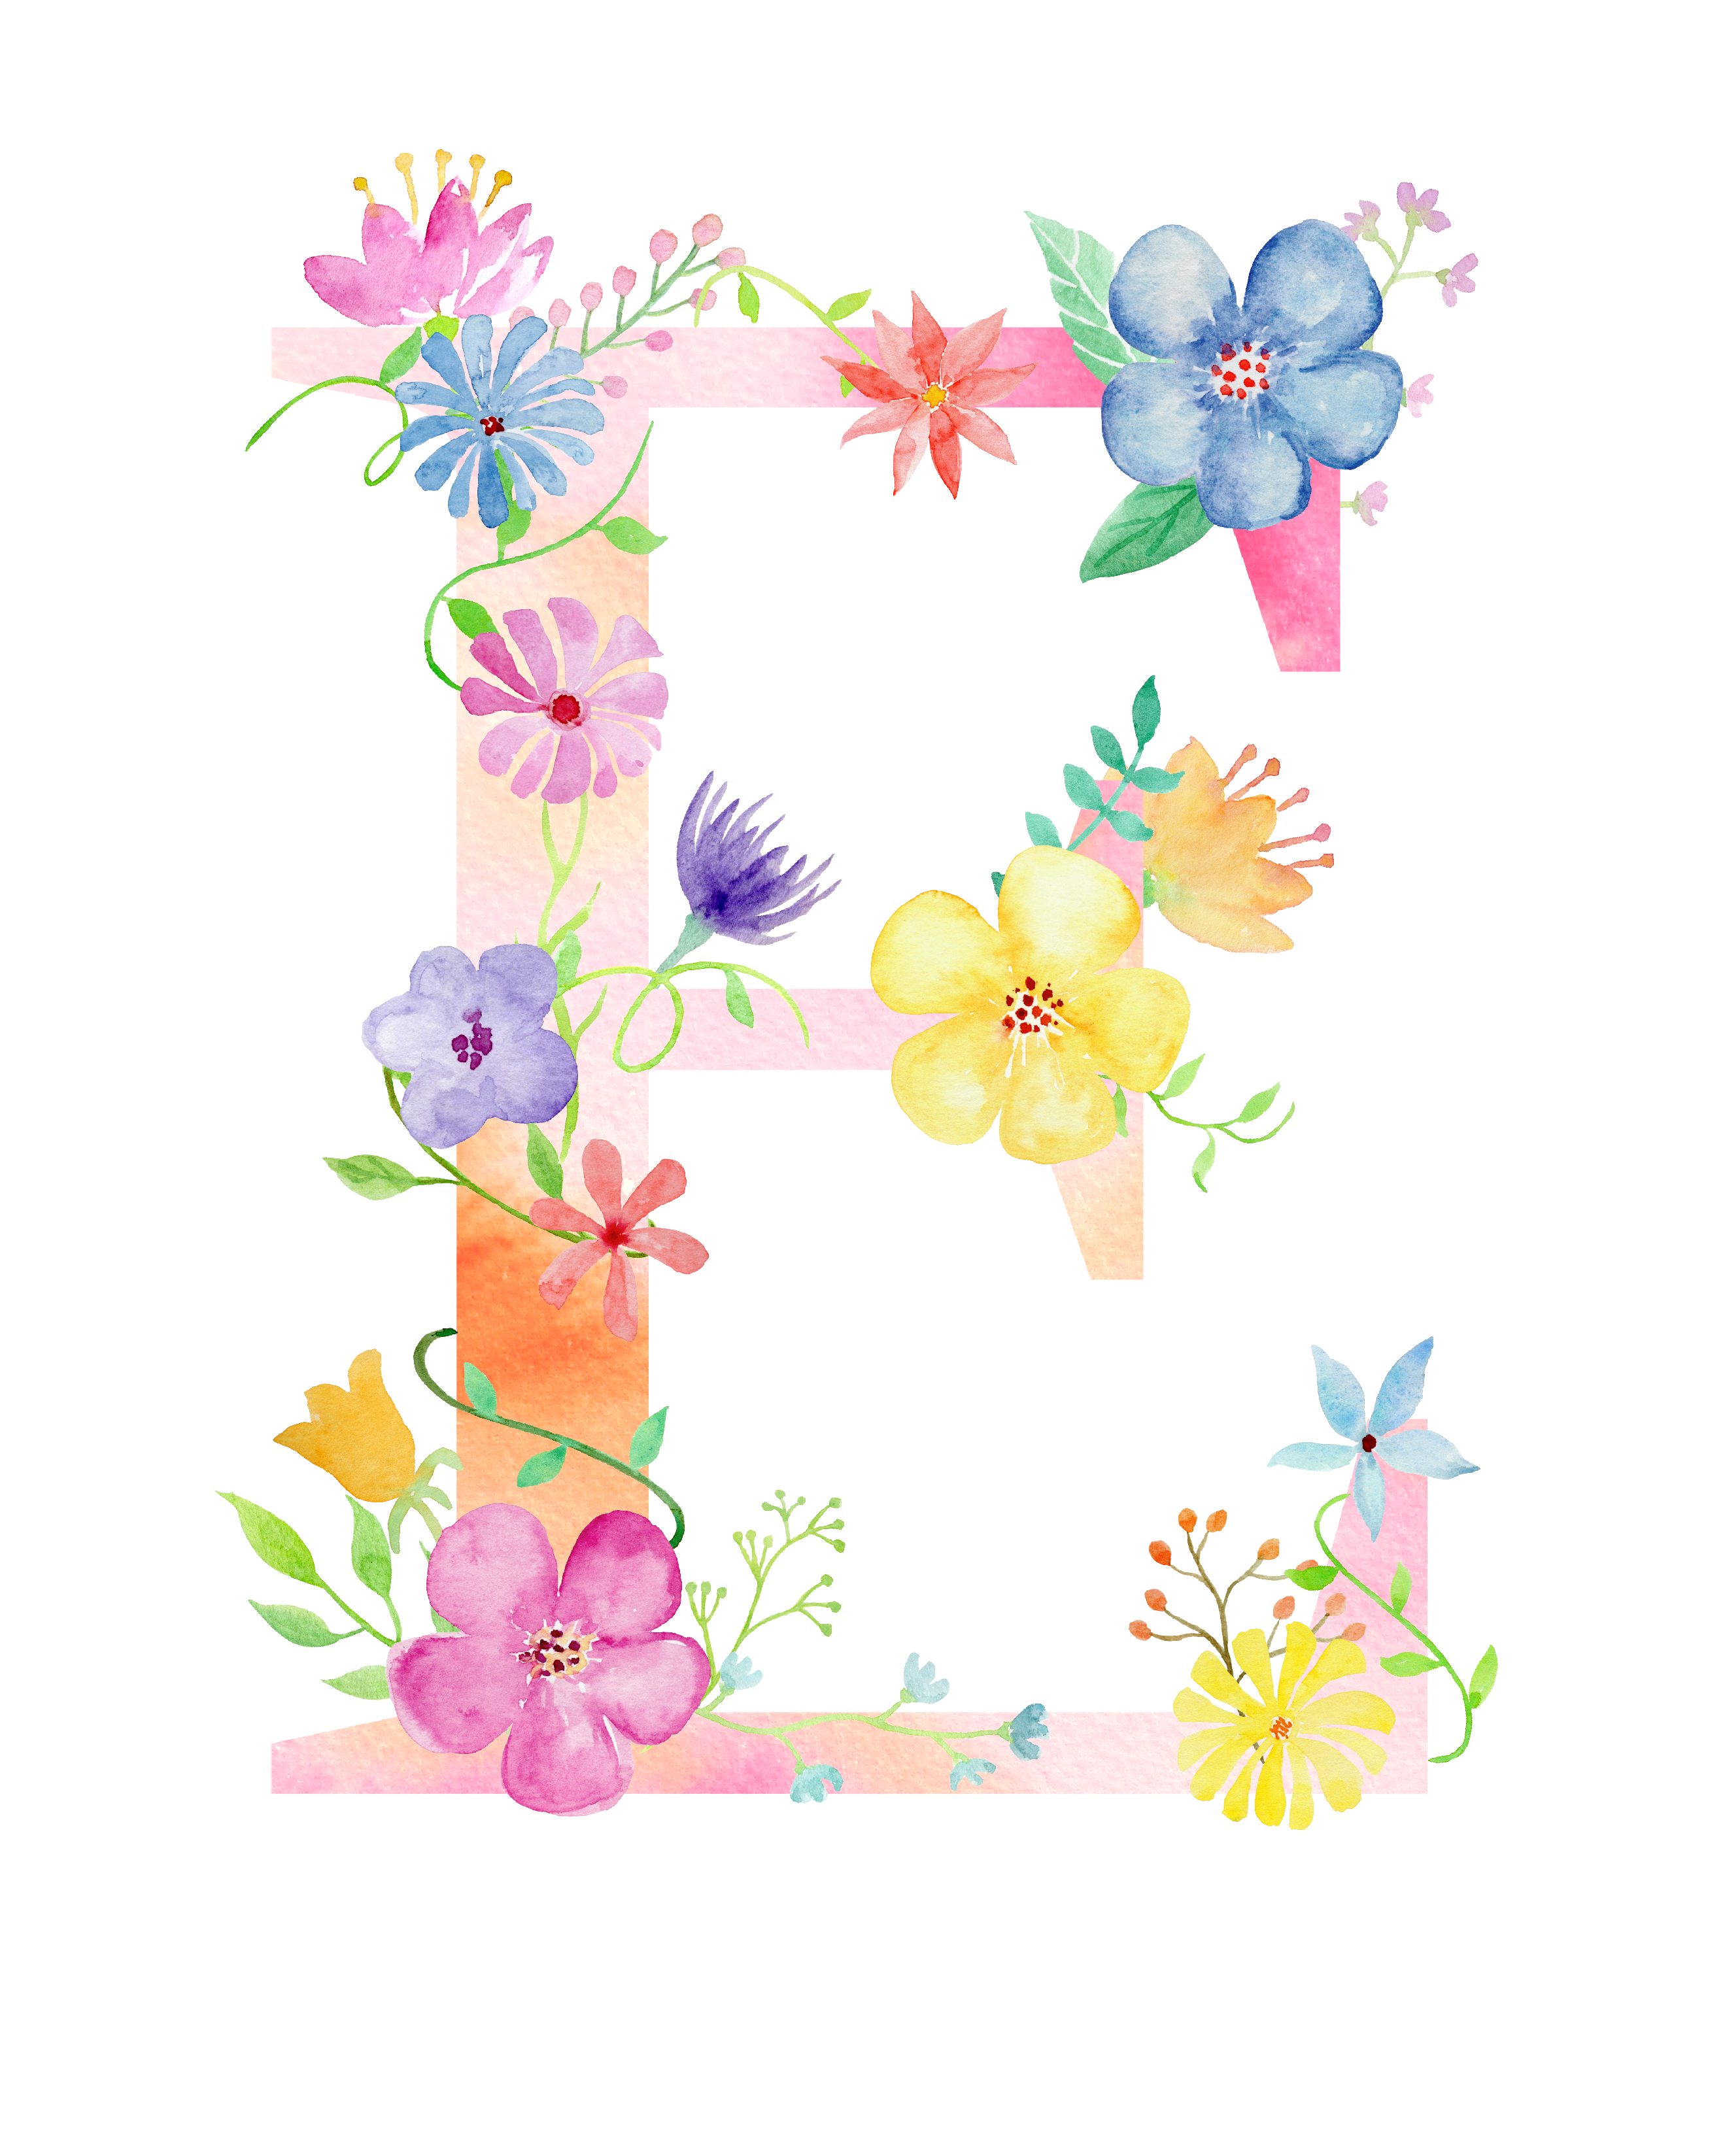 Clipart of flower letters that say pretty clipart royalty free stock Pin by daro kampung on alphabet | Floral letters, Lettering ... clipart royalty free stock